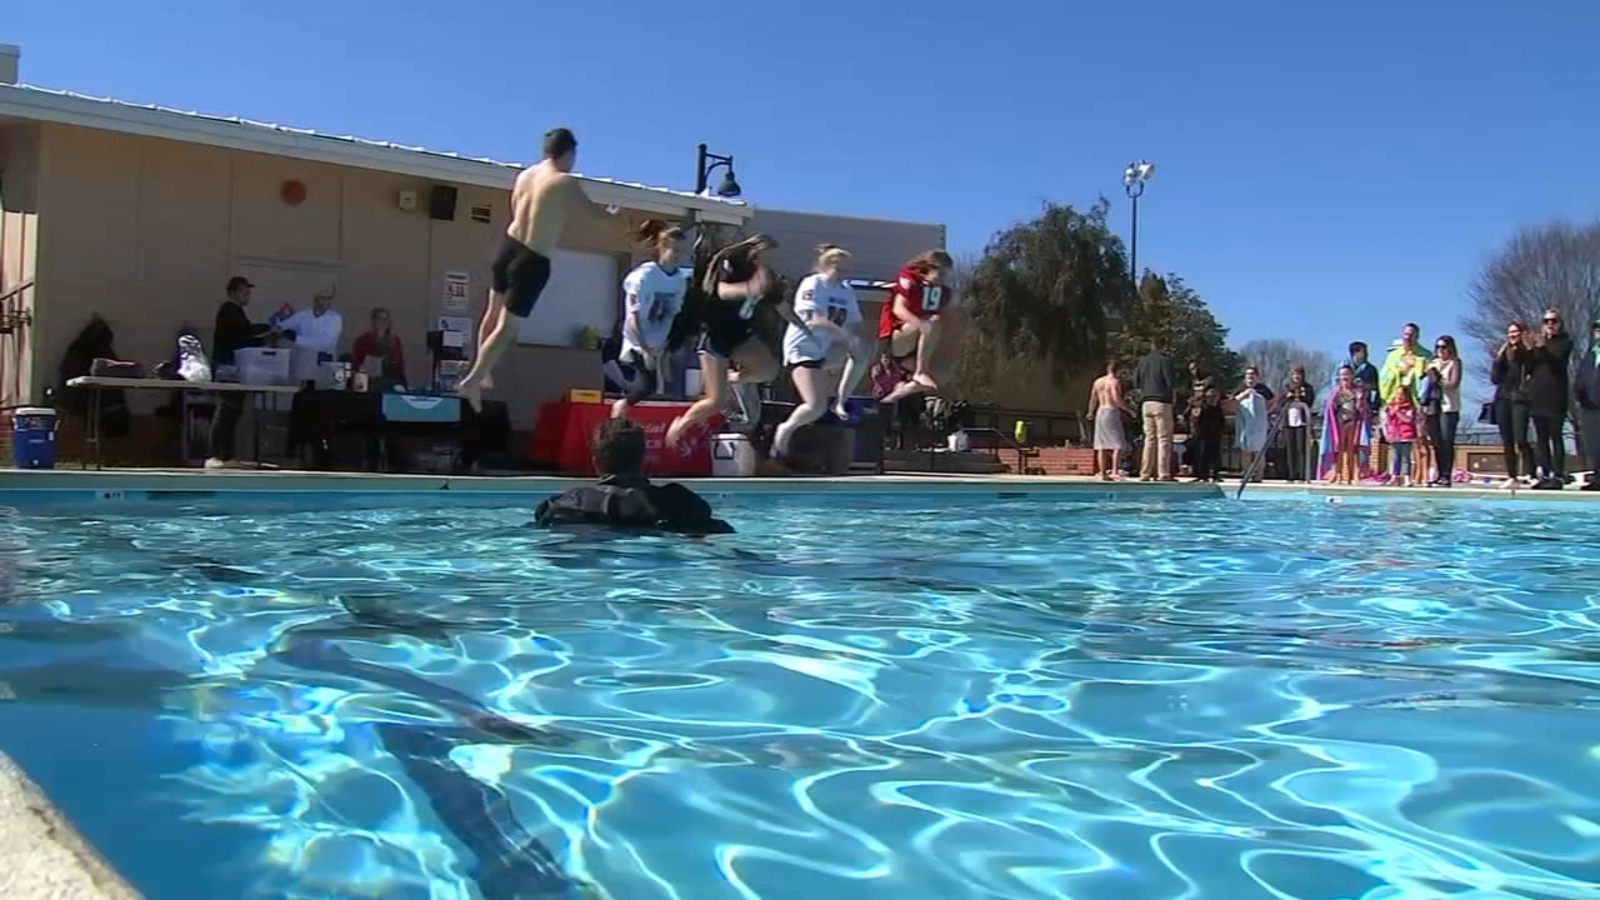 Raleigh Polar Plunge raises $5,000 to benefit Special Olympics athletes